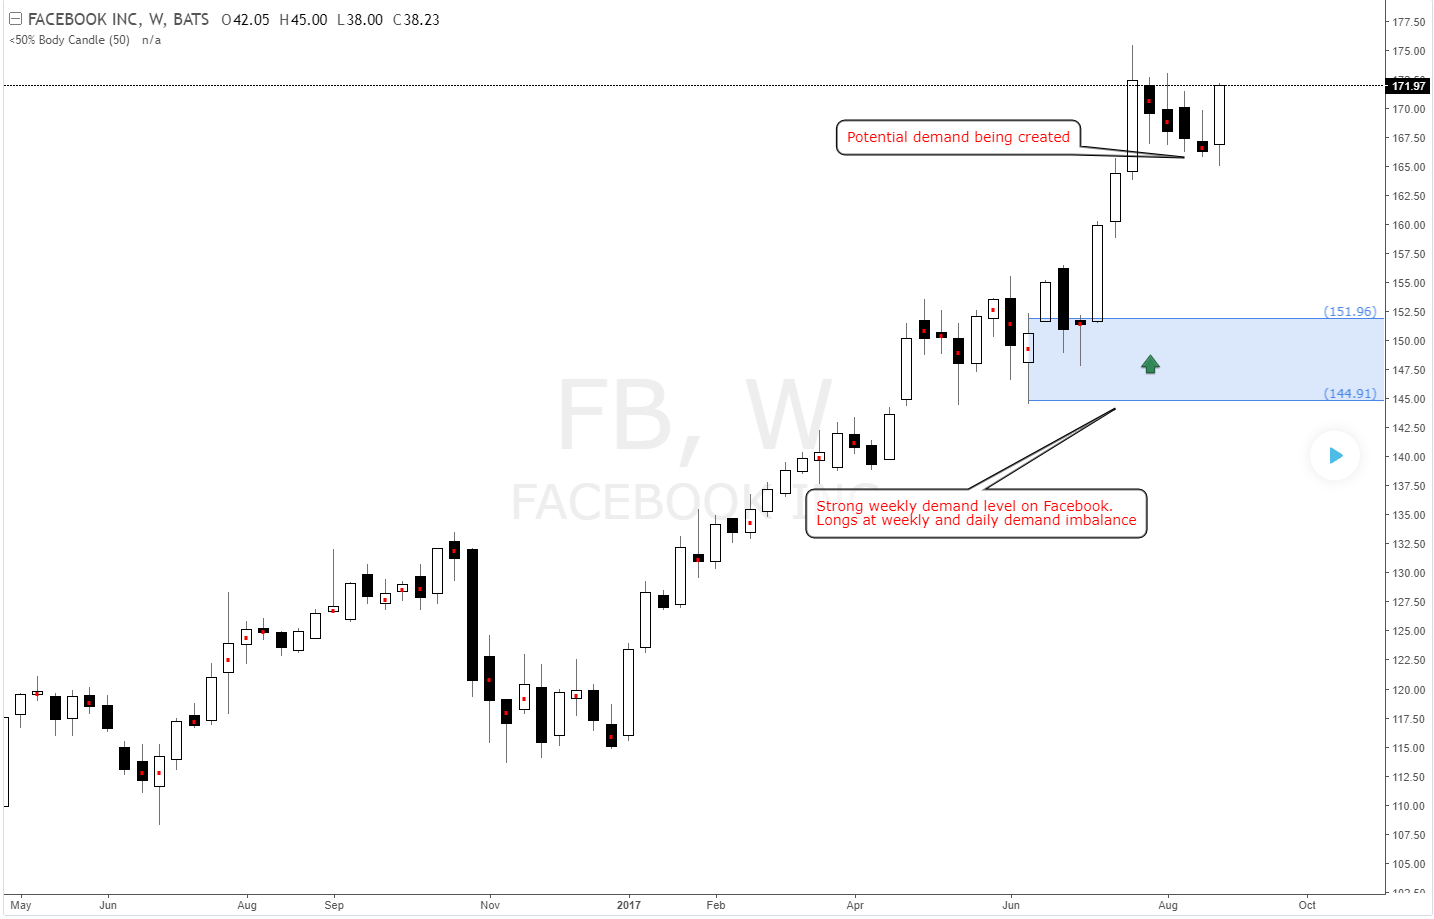 Facebook strong weekly demand imbalance